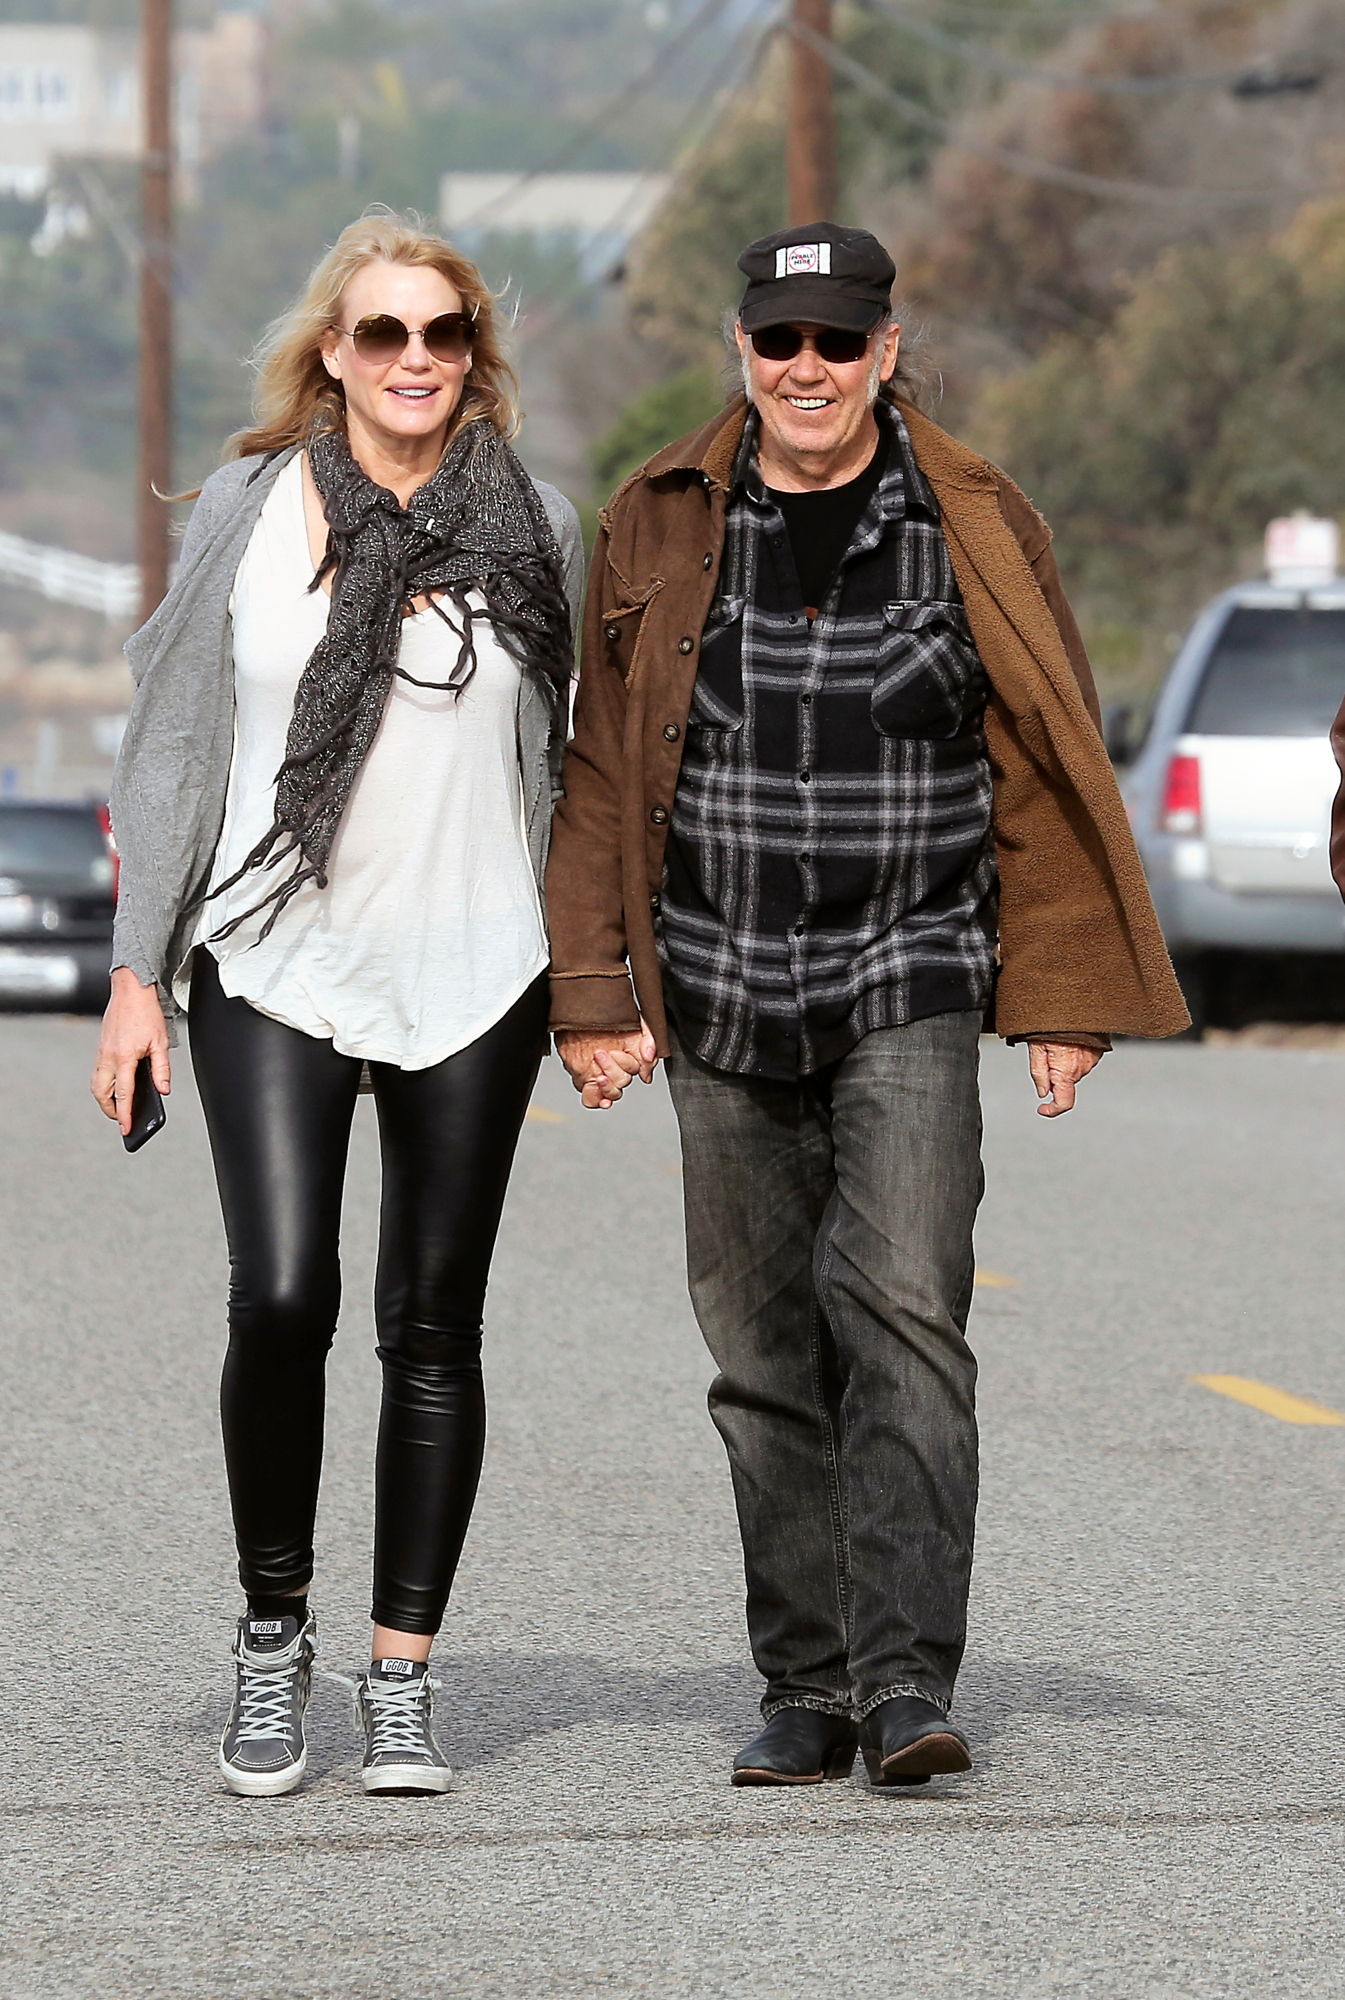 Cute Couple Daryl Young And Neil Young Go For A Romantic Stroll In Malibu